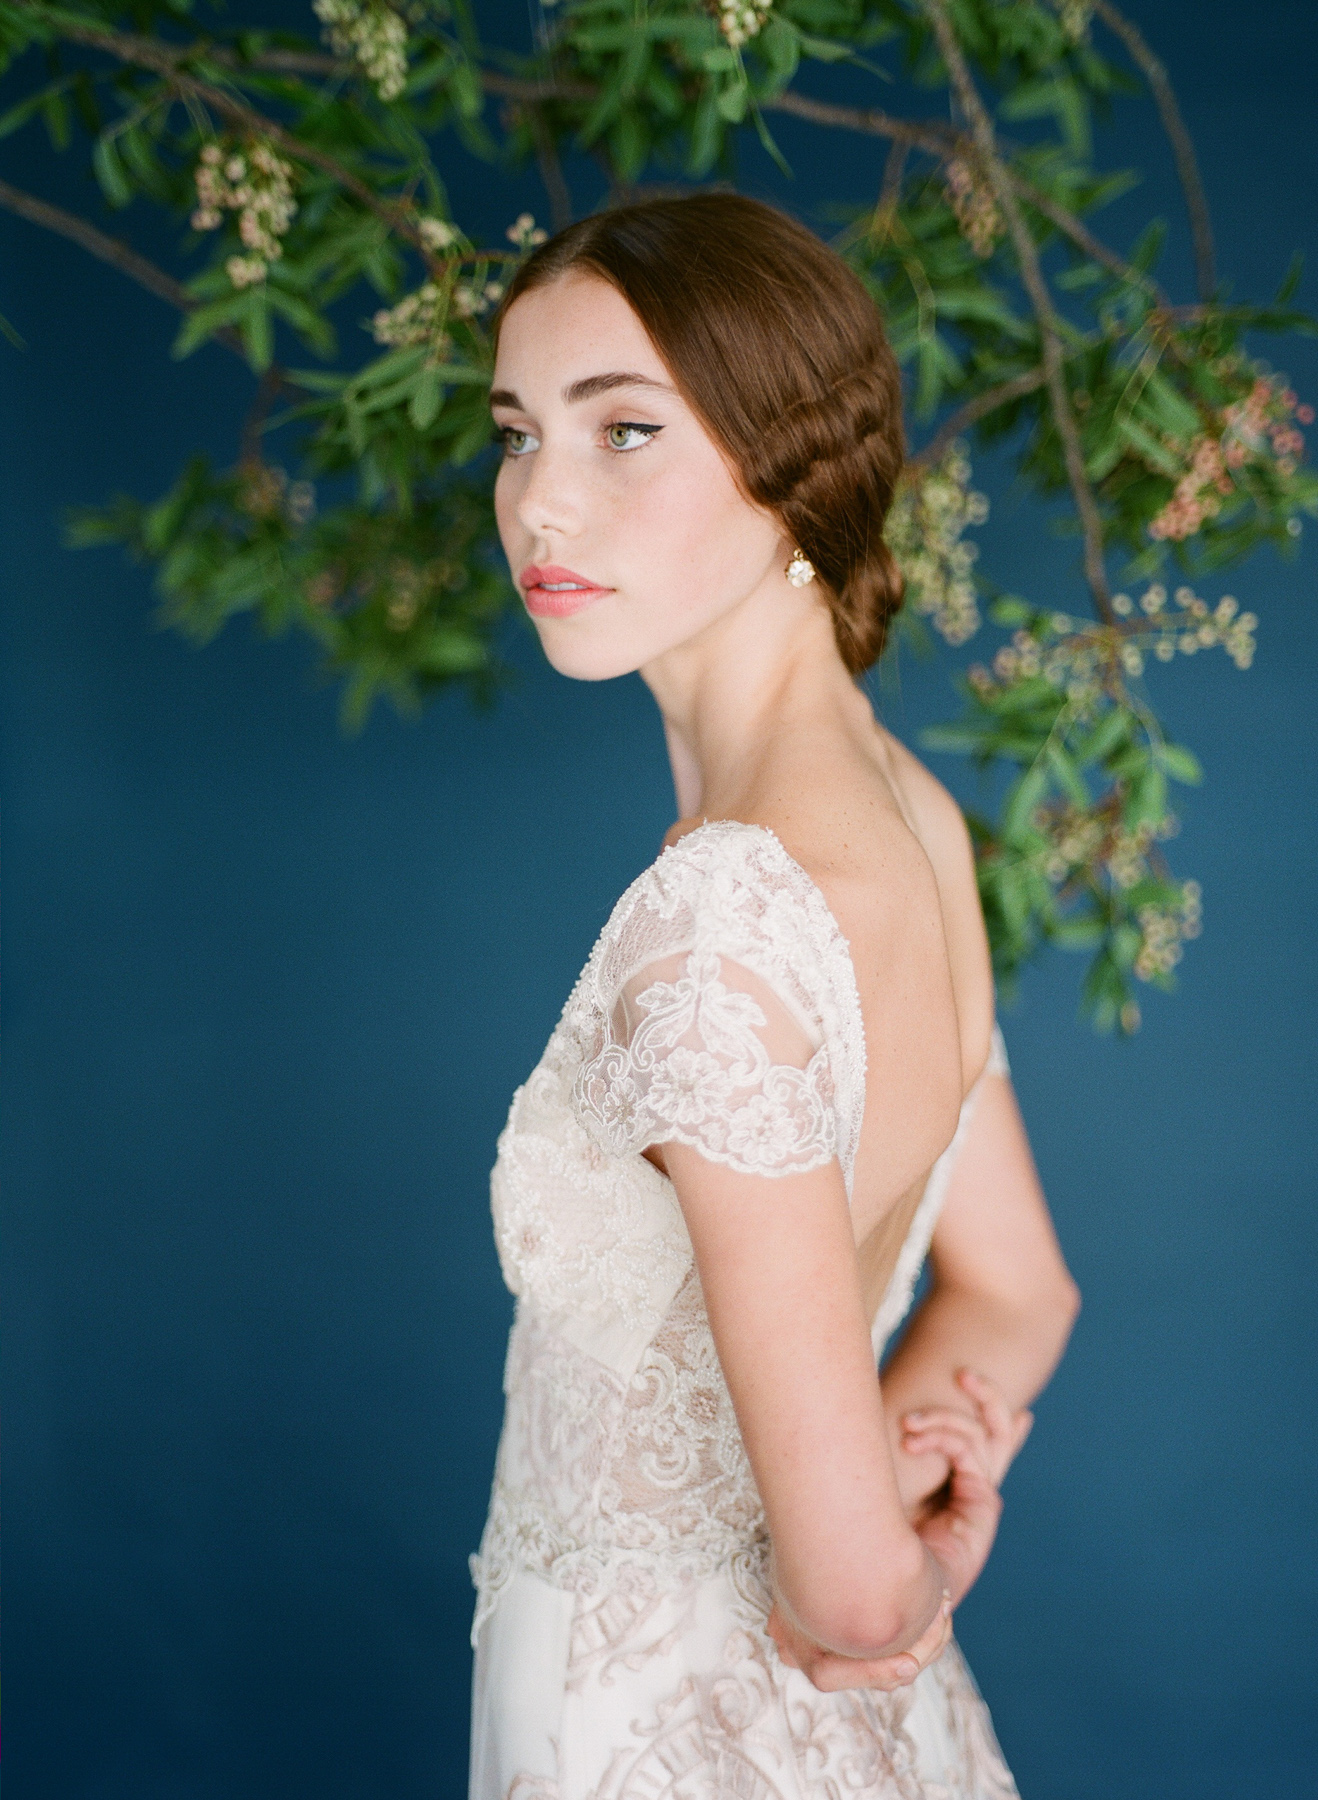 Type A Soceity San Francisco Claire Pettibone Theo Milo12.jpg